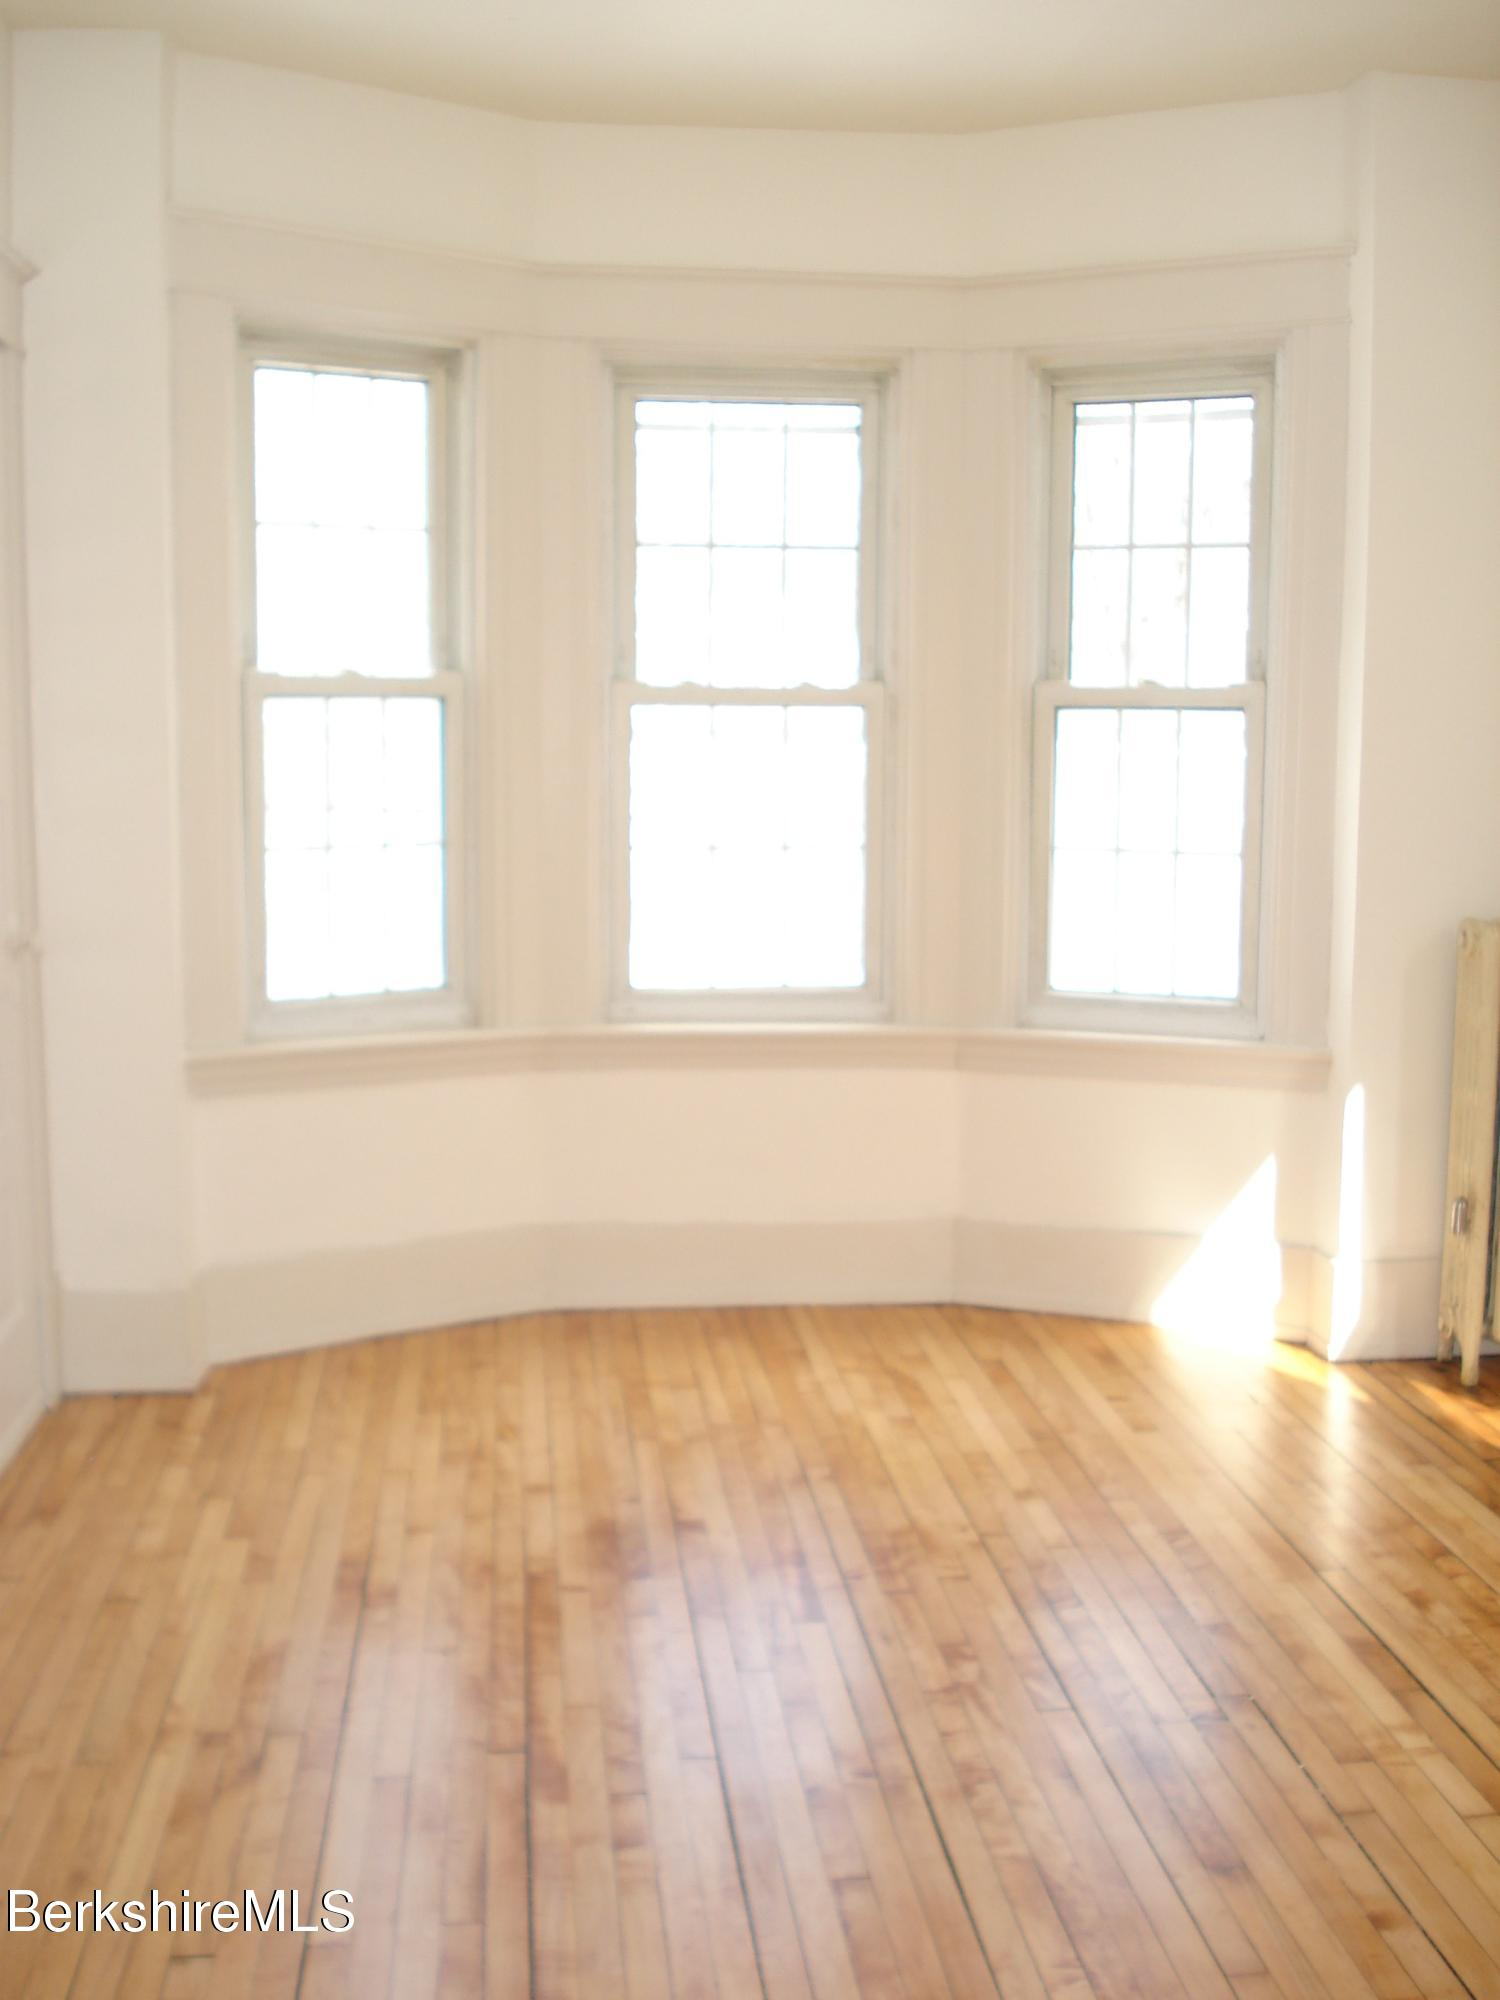 Property located at 265-279 Bradford St Pittsfield MA 01201 photo